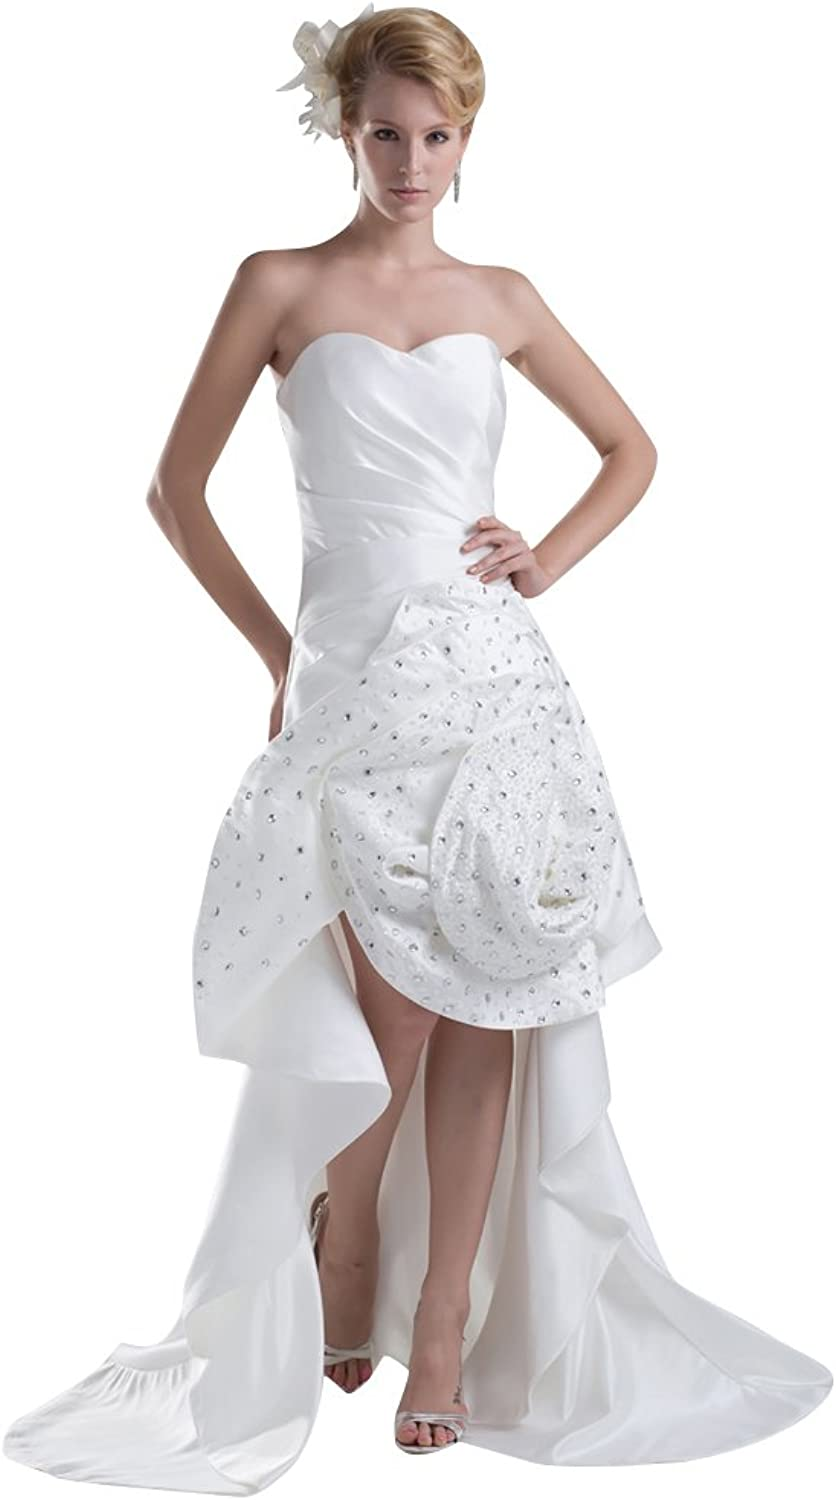 Vampal Ivory Sweetheart Strapless High Low Wedding Dress With pinktte Skirt